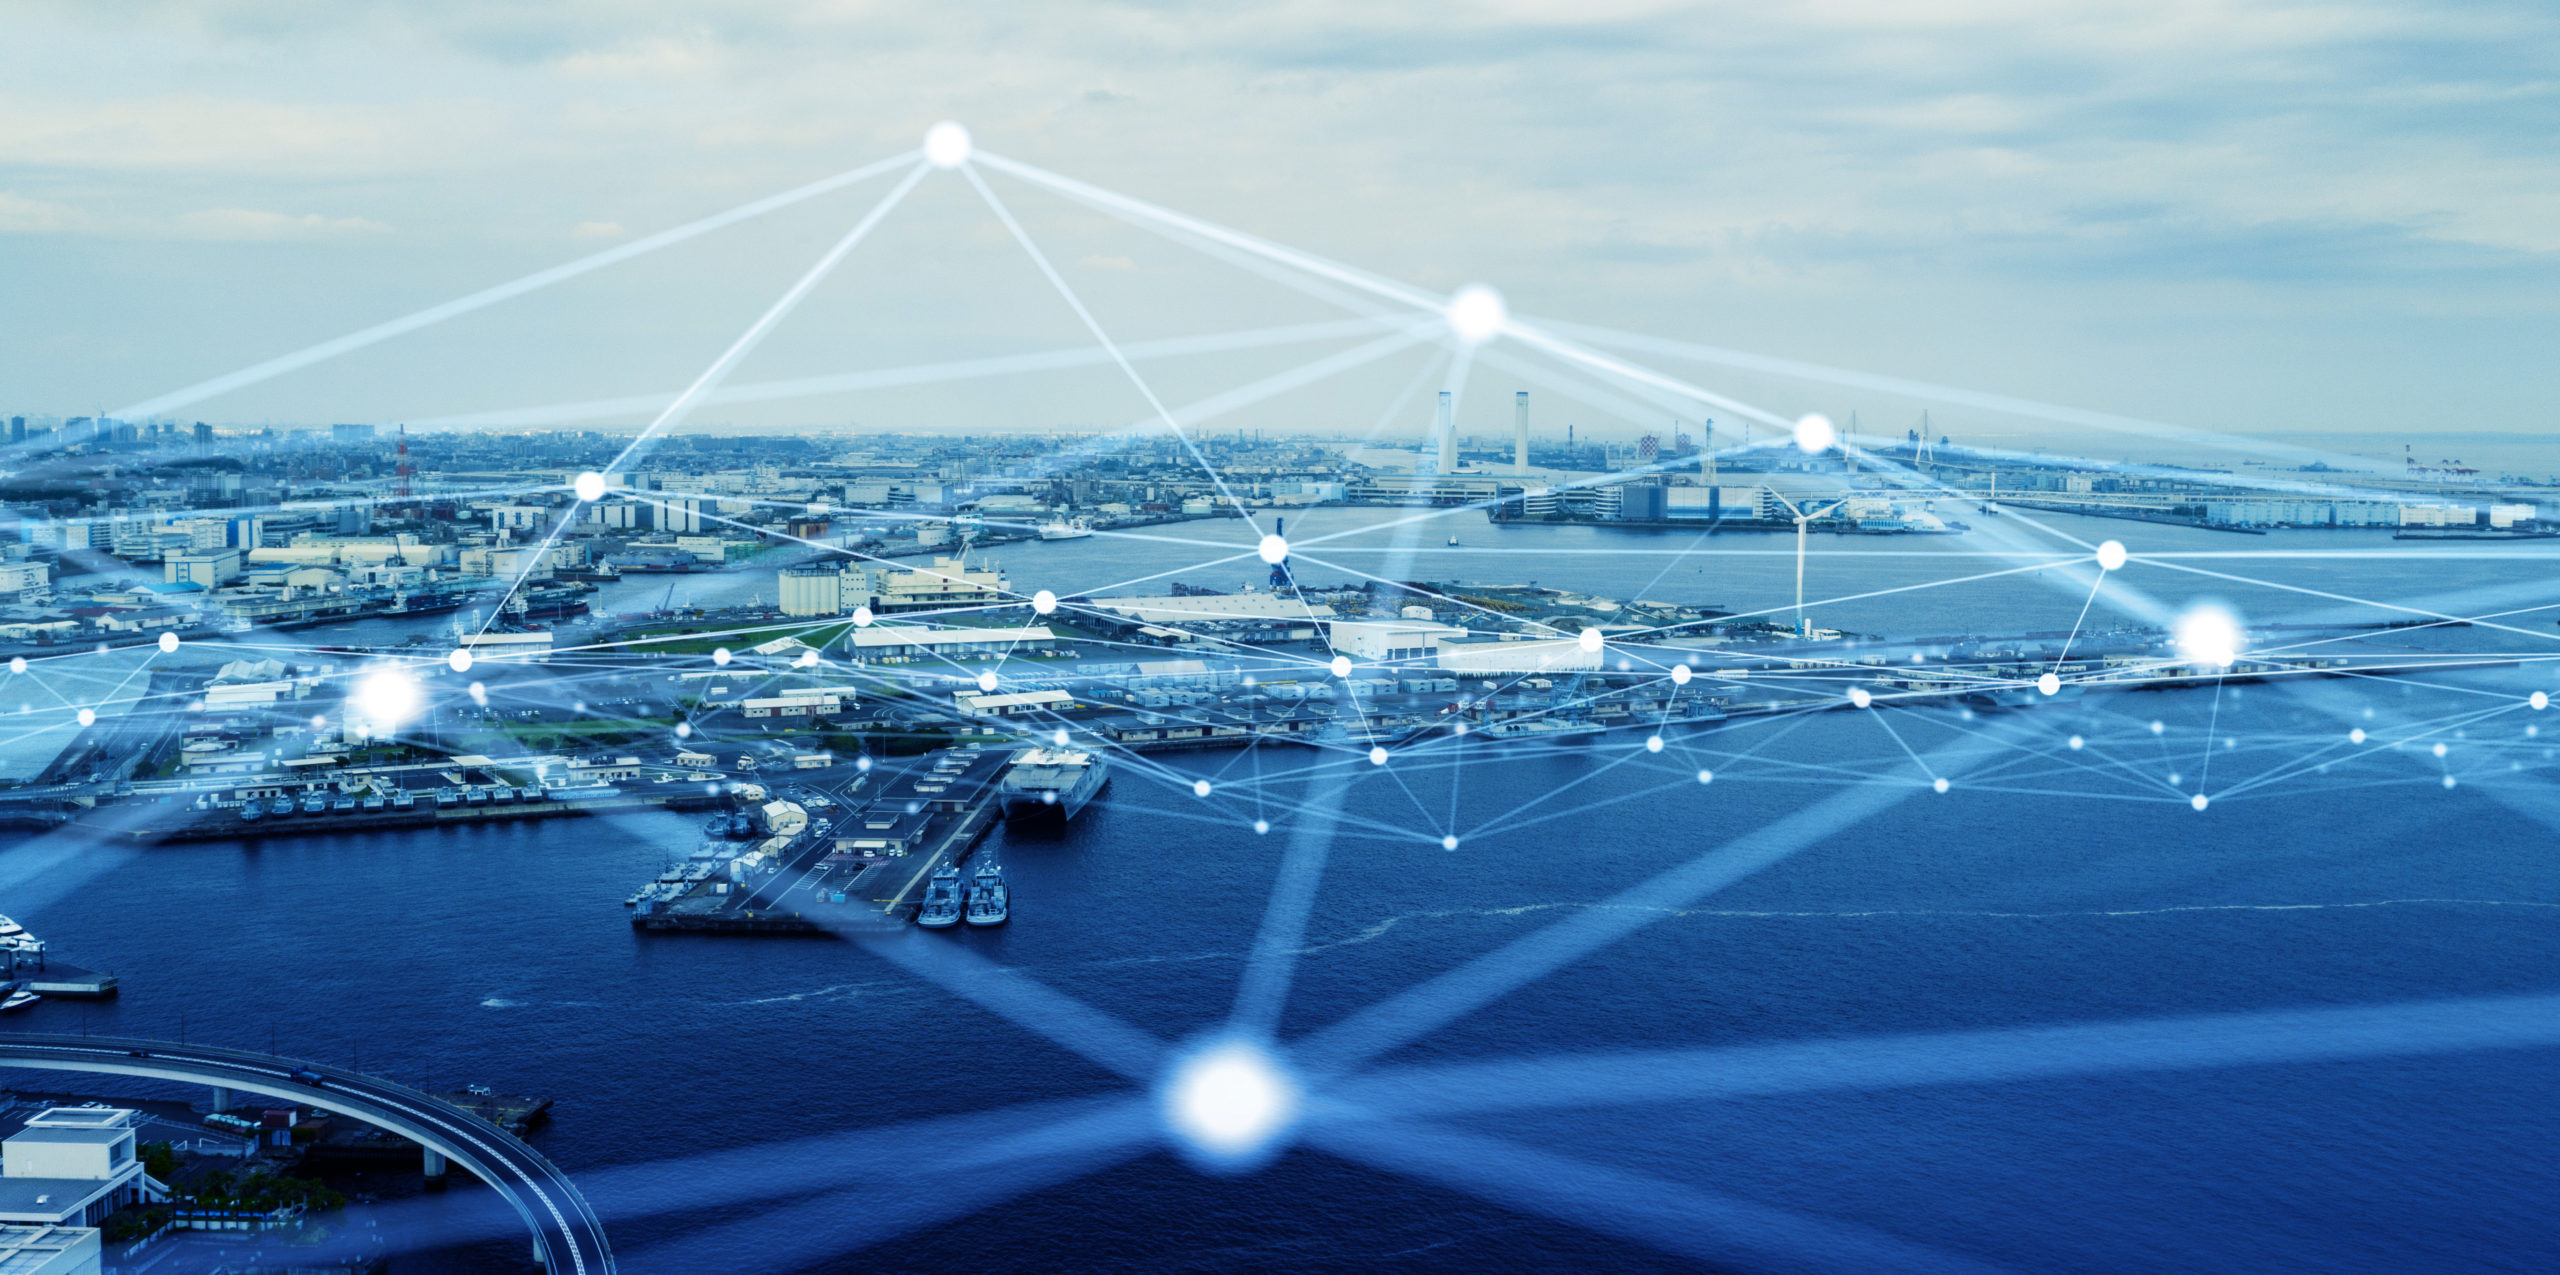 Modern port and ships aerial view and communication network concept. Ship radio. 5G. IoT.